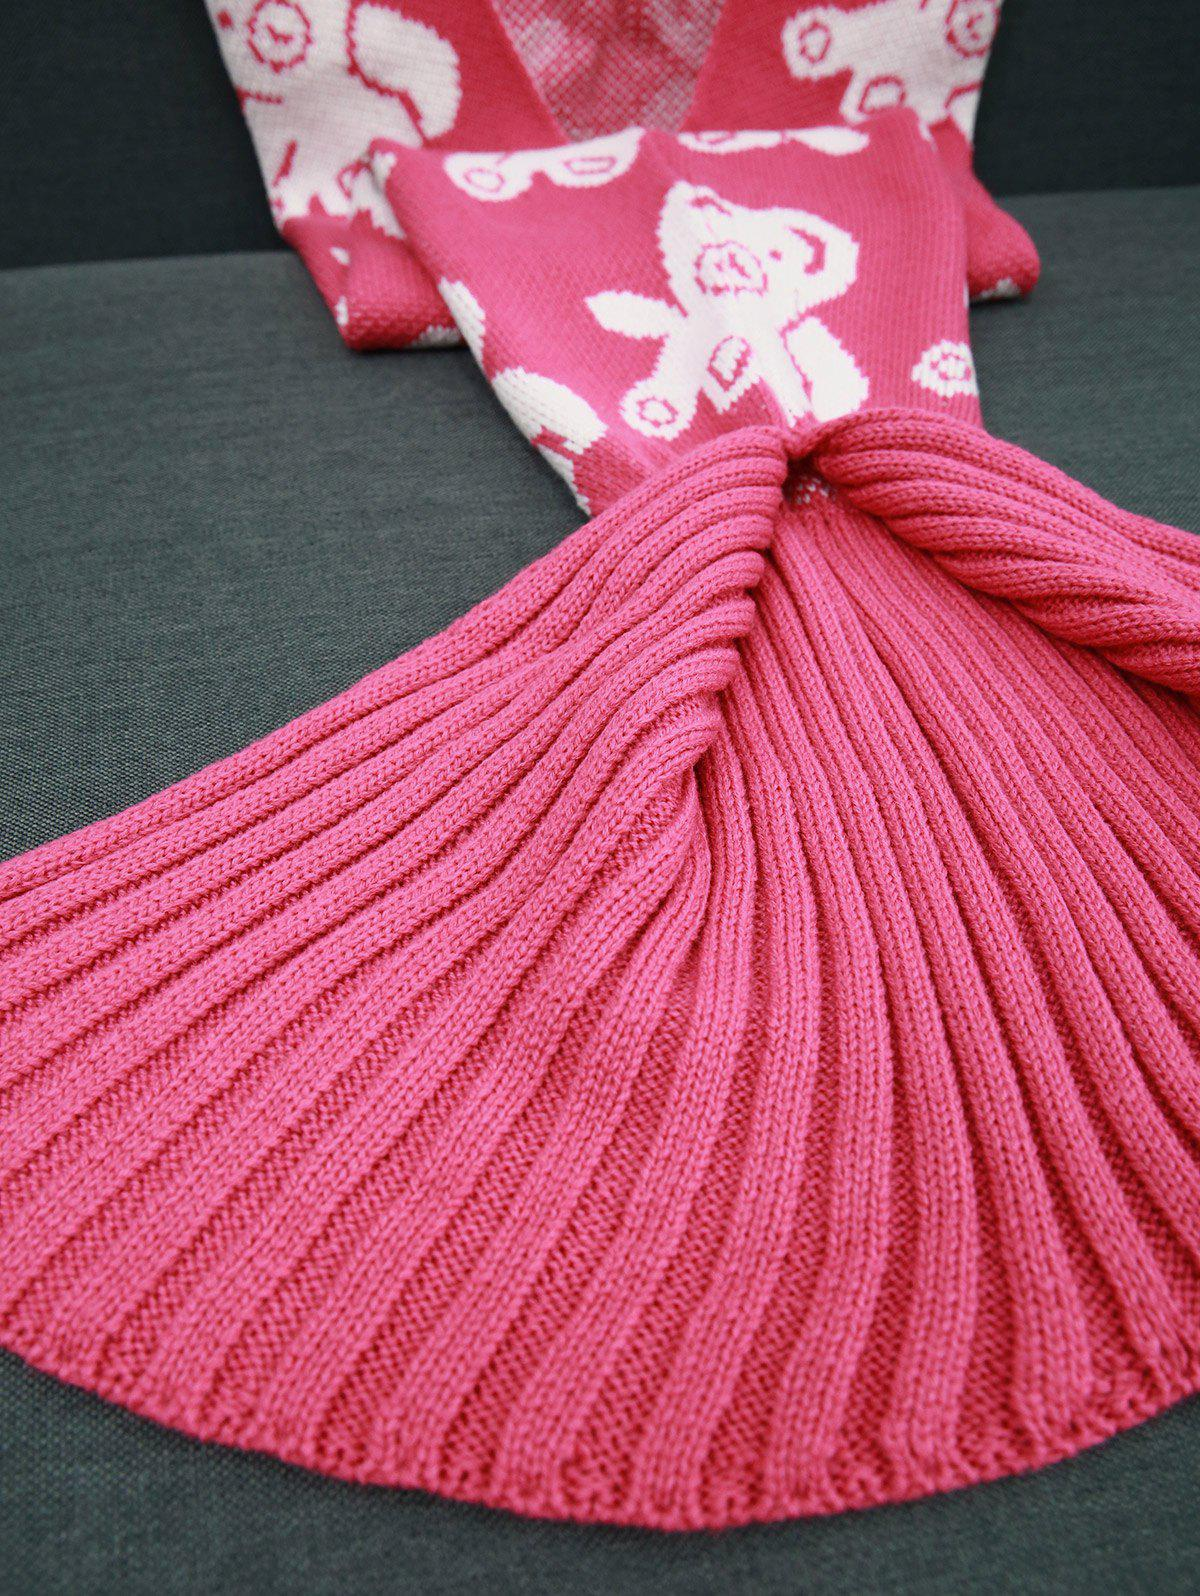 Warmth Acrylic Knitted Bear Pattern Mermaid Tail Blanket - ROSE RED